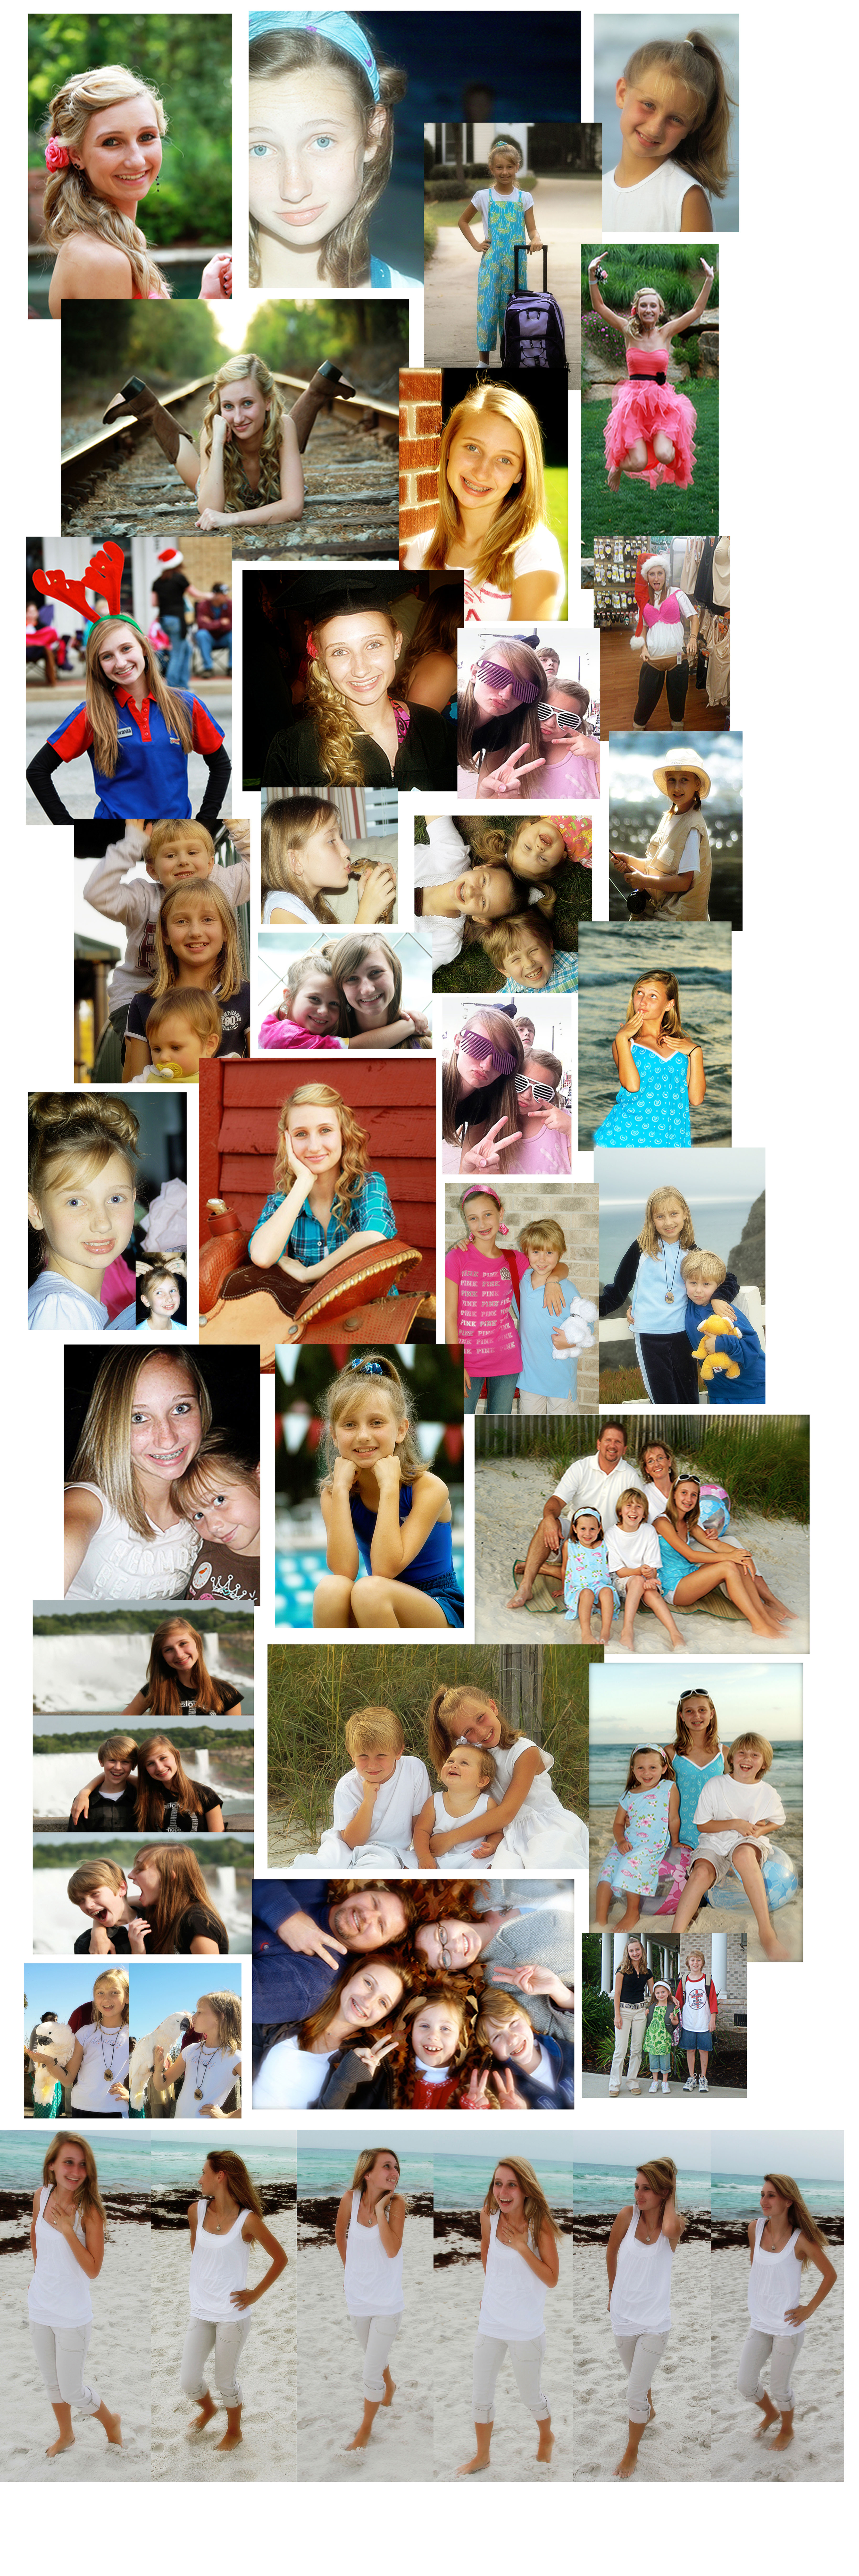 miranda19thbdaycollage